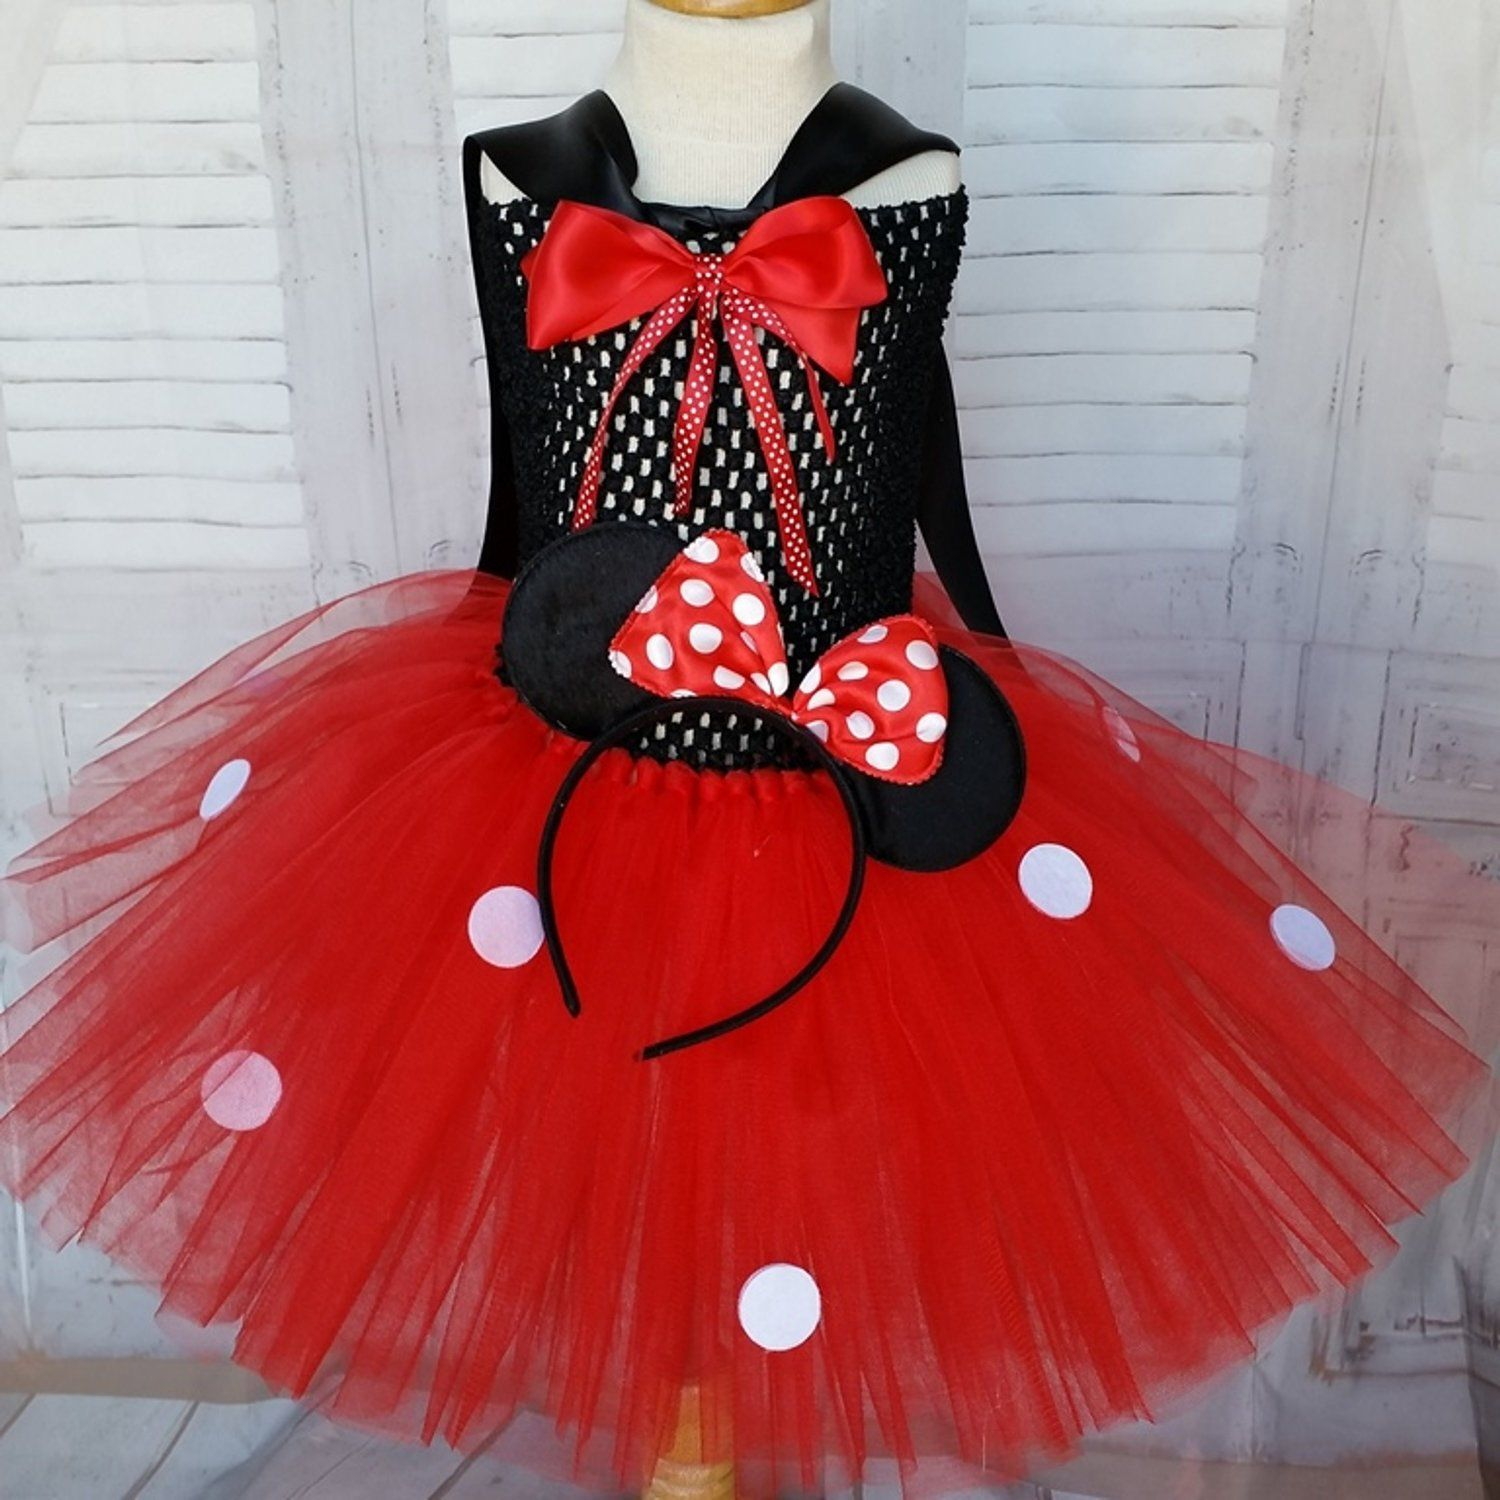 01cda6b616da3 Red with white dots strapless stretch mouse tutu dress. Baby and ...